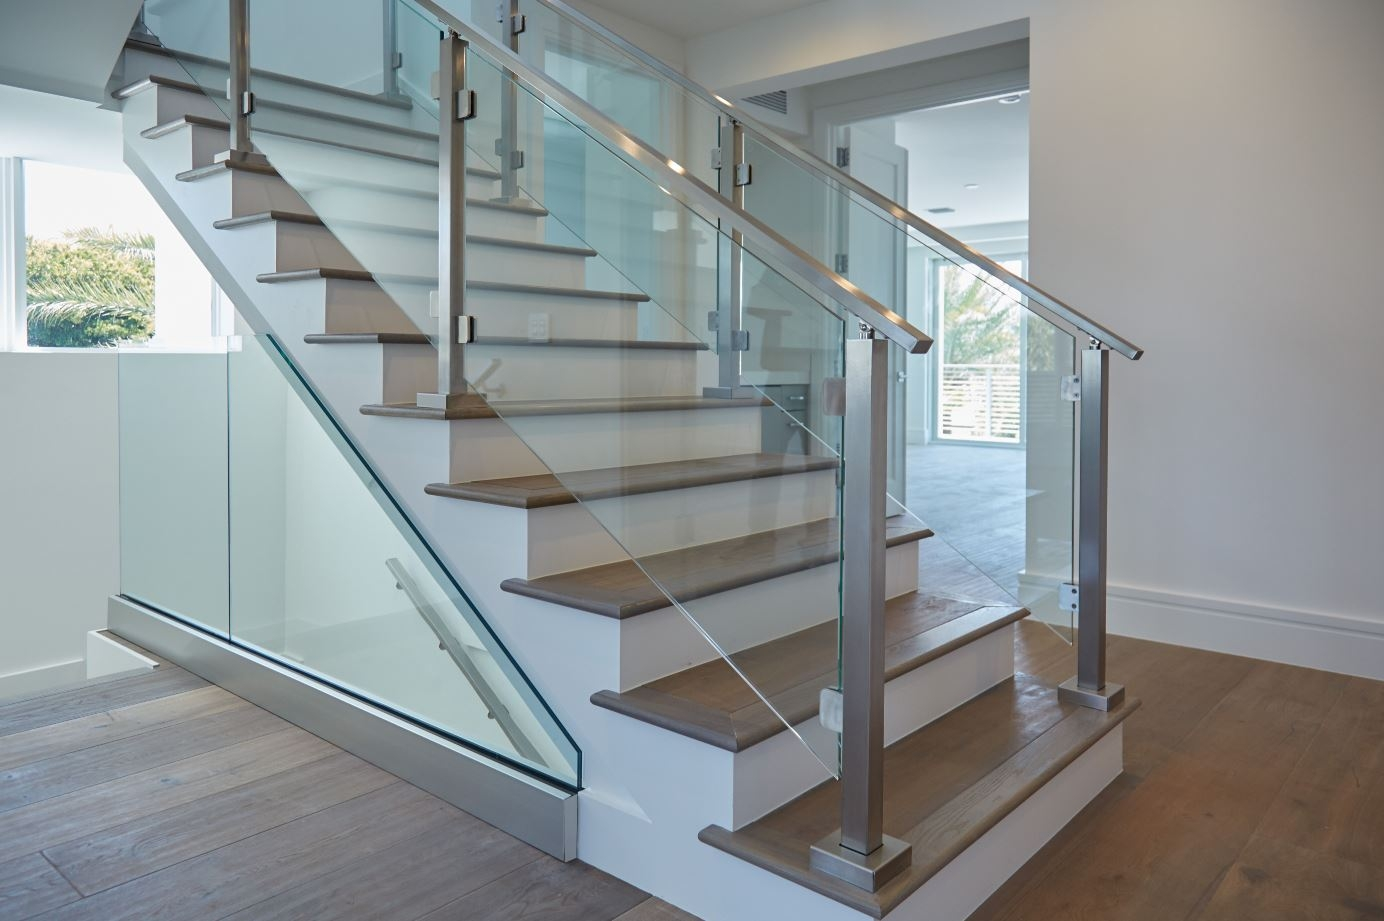 Modern Railing Systems In Wood Cable Wire Stainless Steel Glass   Staircase Railing Designs In Wood And Glass   Frosted Glass   Low Cost   Stair Handrail   Wooden   Solid Wood